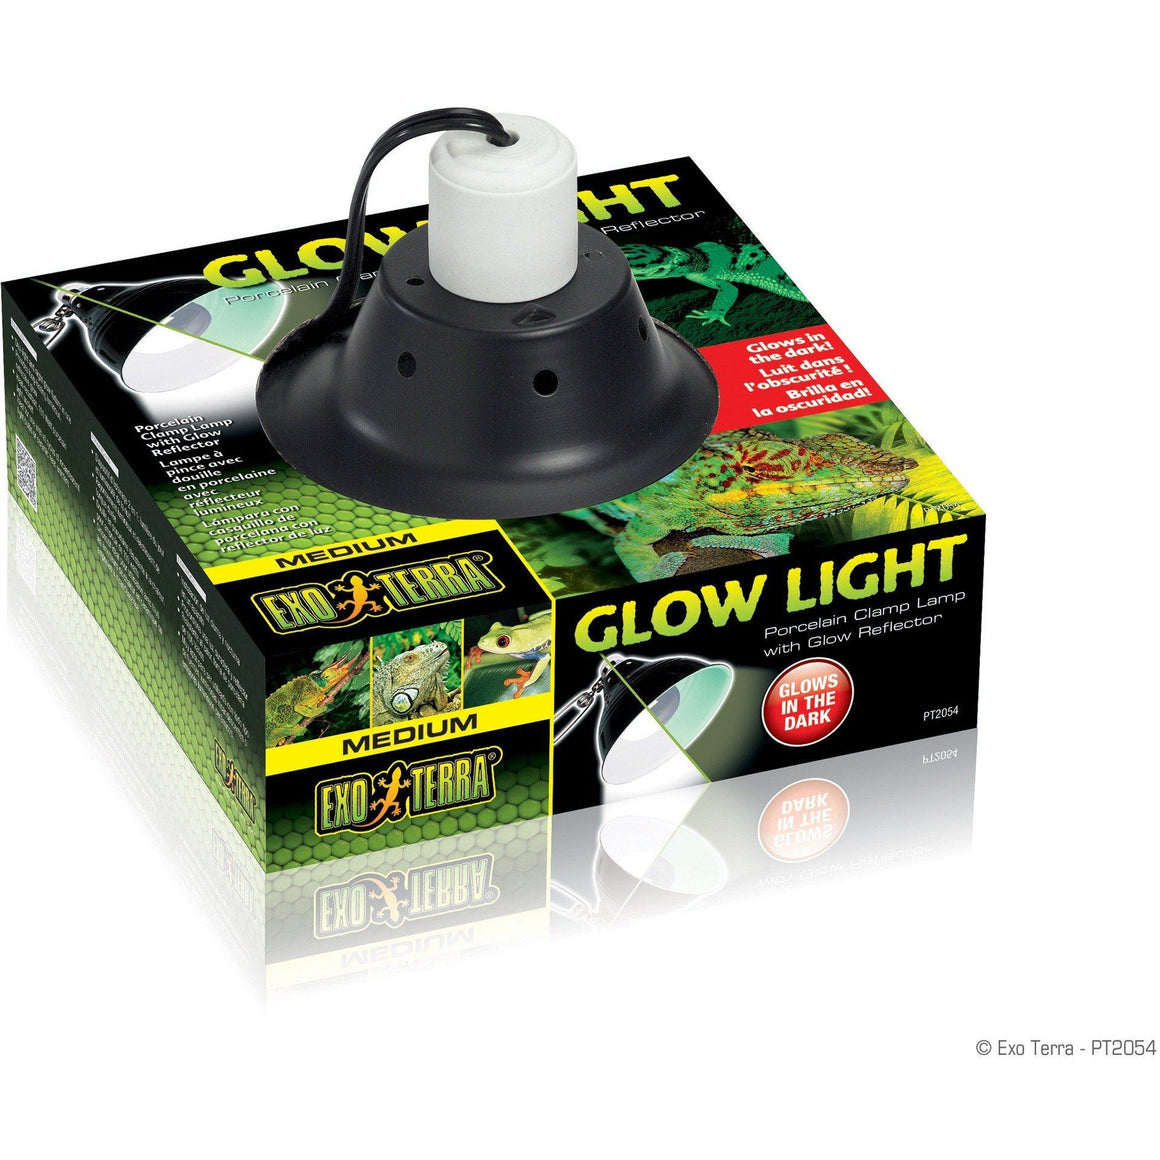 "Exo Terra Glow Light Porcelain Clamp Lamp Small - 100 Watt - (5.5"" Diameter)"